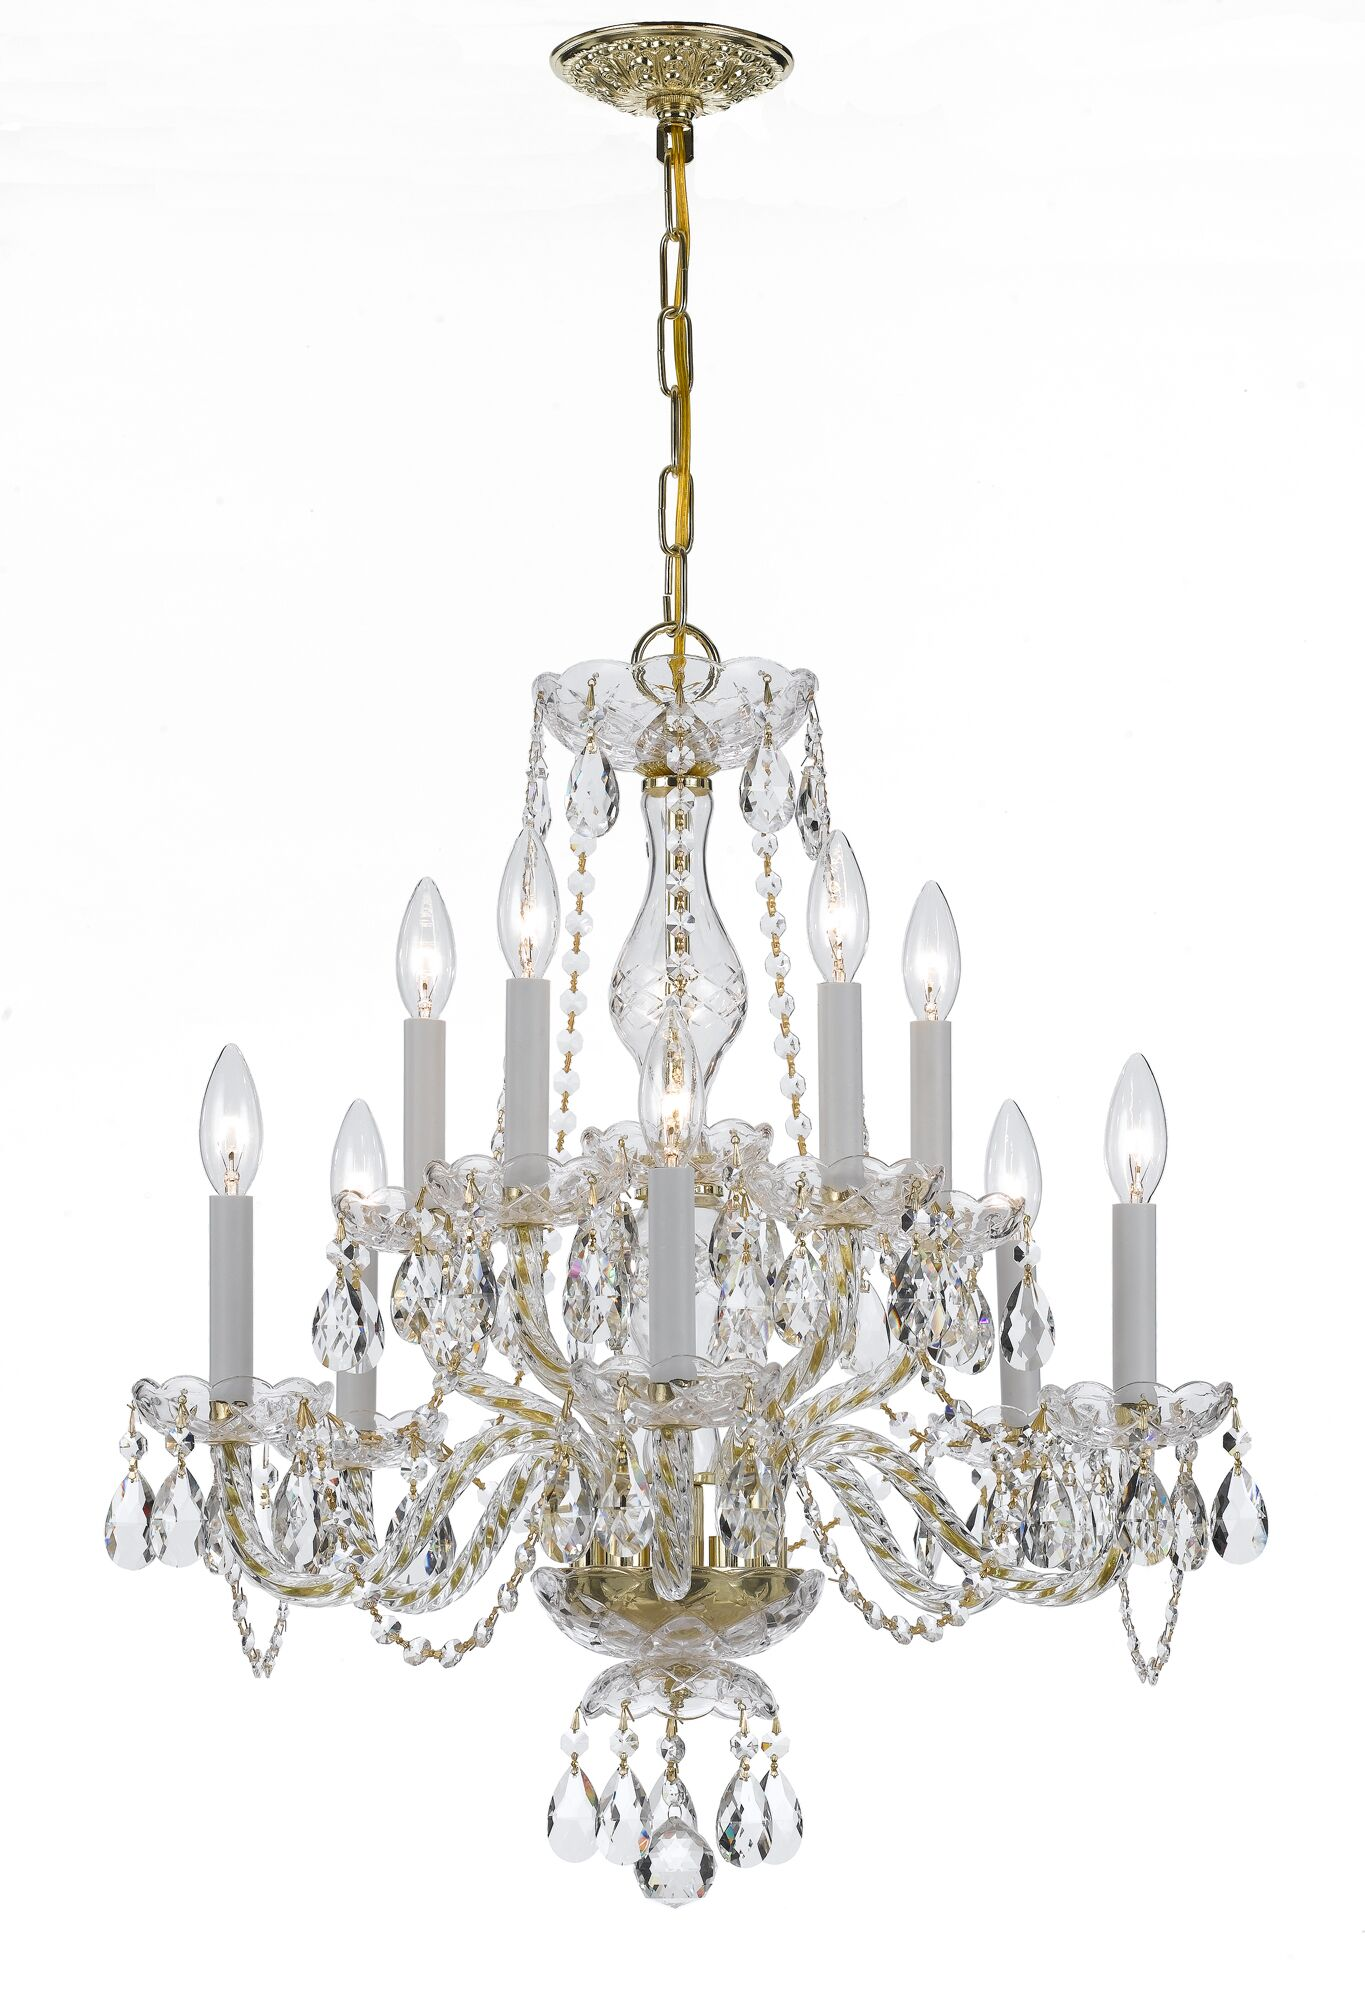 Hetrick 10-Light Candle-Style Chandelier Crystal Type/Finish: Majestic Wood Polished/Polished Brass